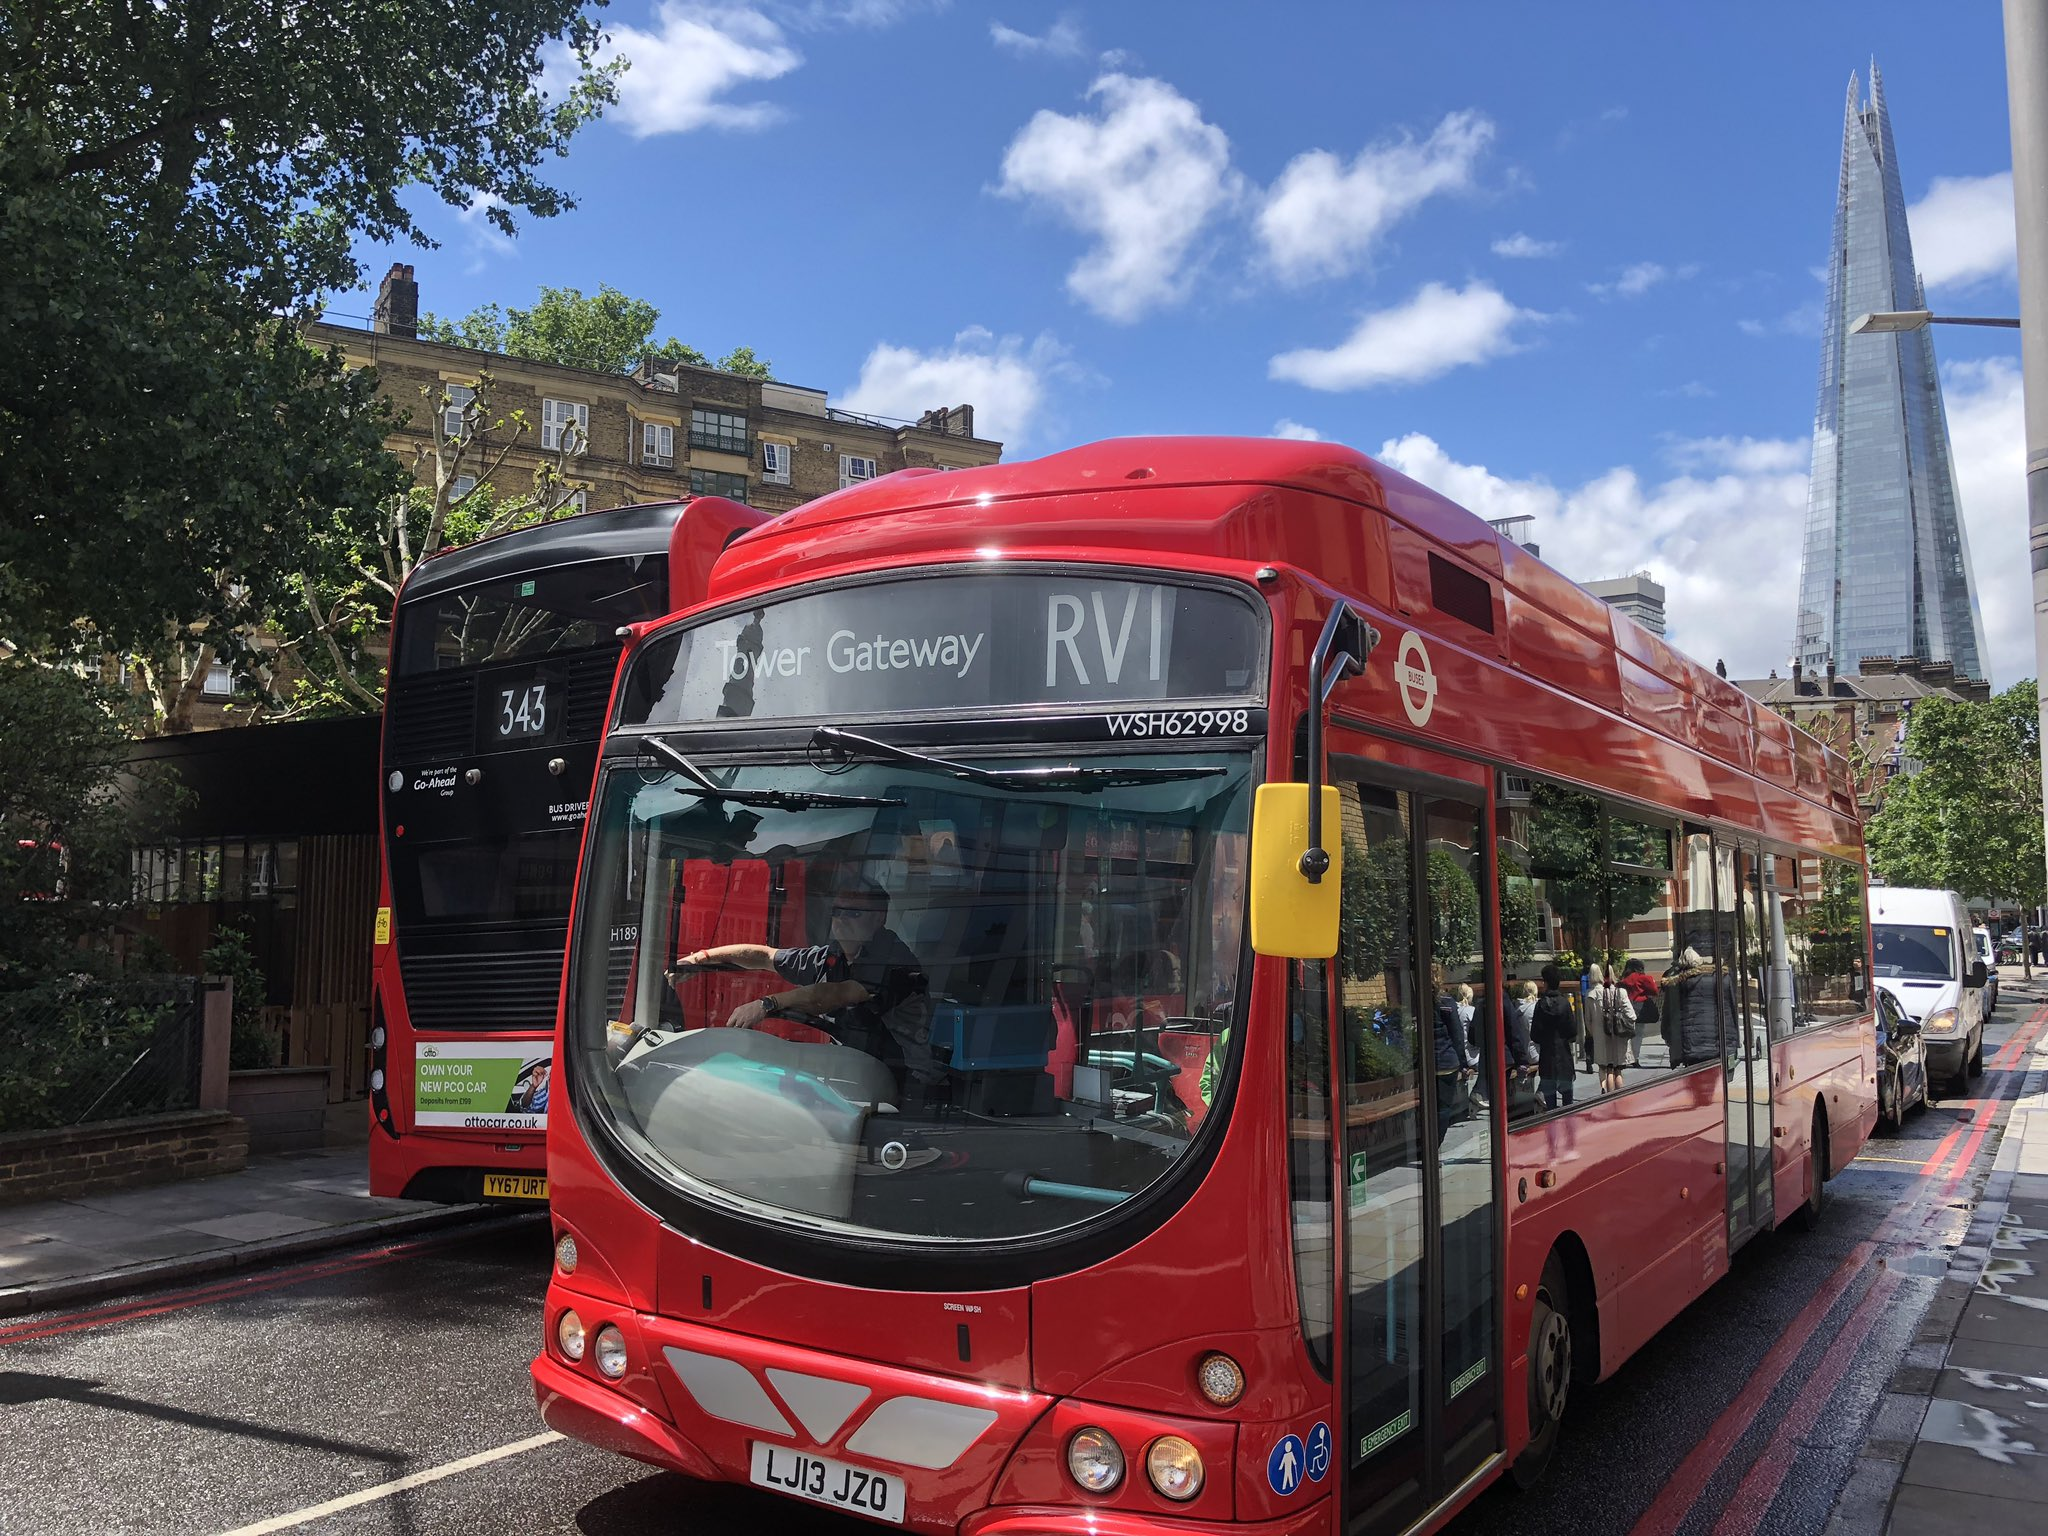 Rethink urged as RV1 bus route scrapped after 17 years